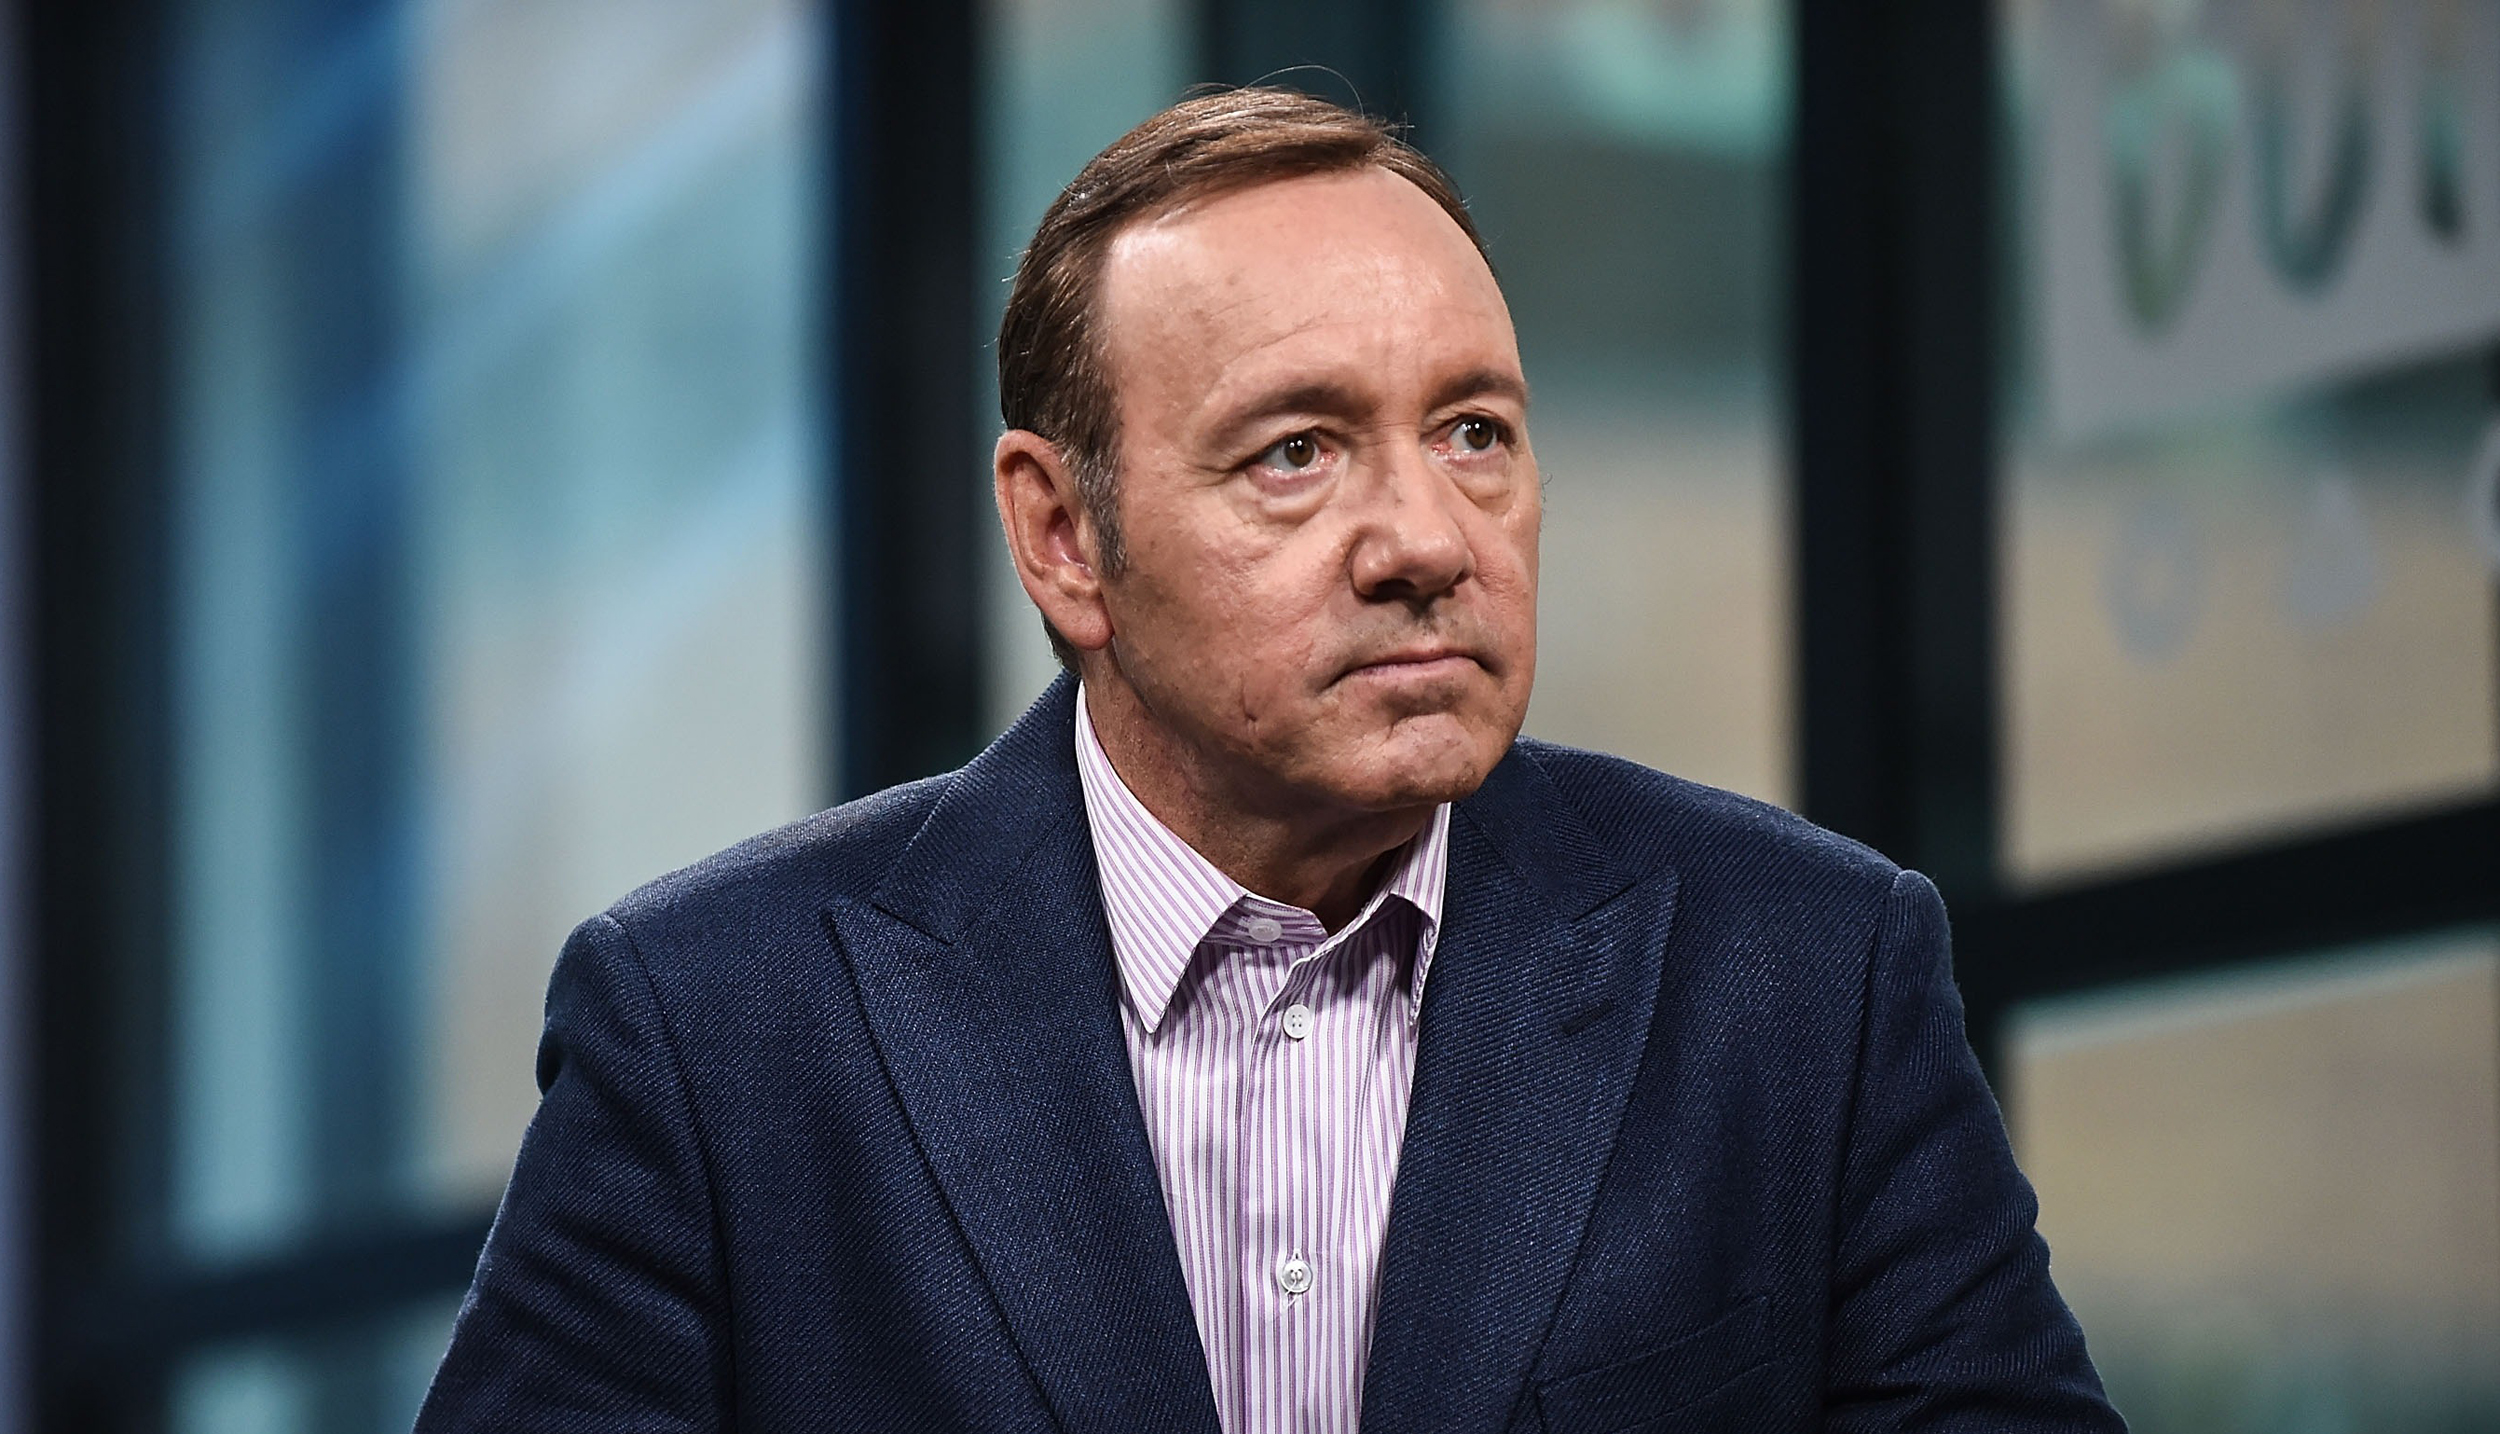 Image: Kevin Spacey attends the Build Series to discuss his new play